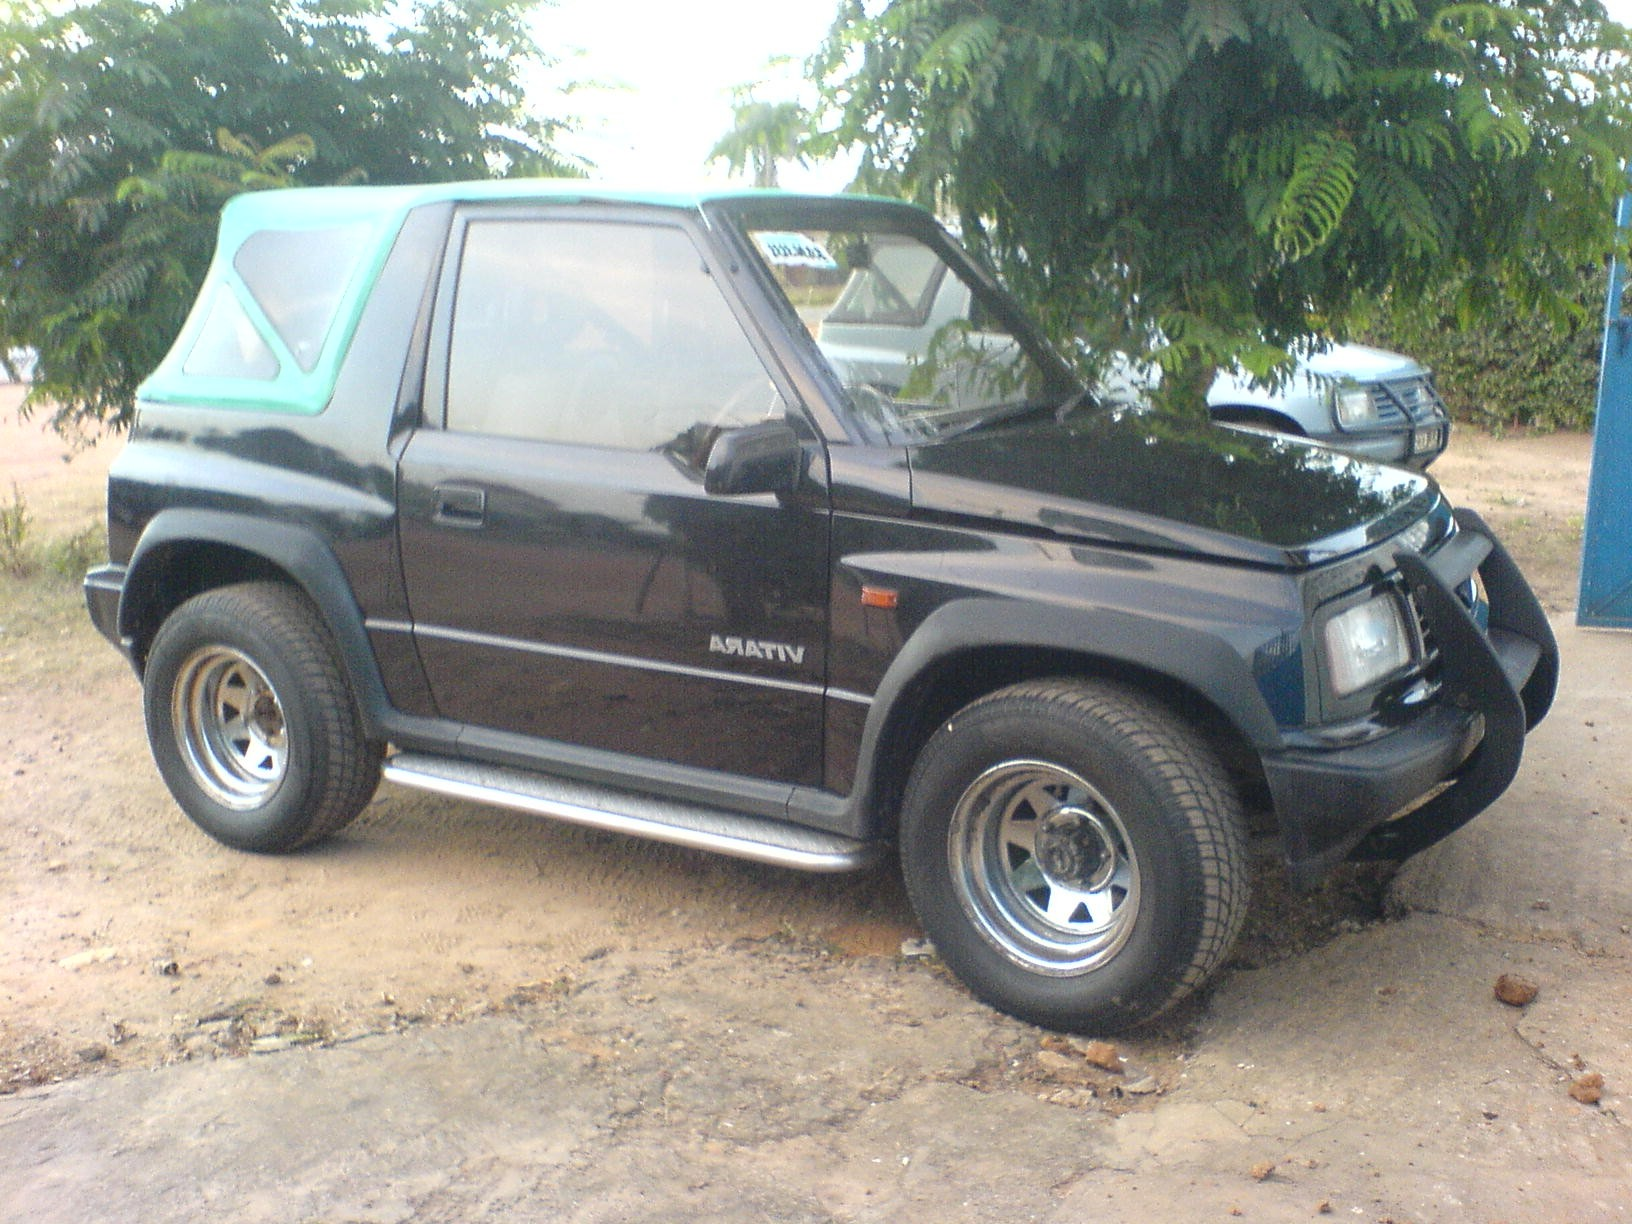 Suzuki Vitara history, photos on Better Parts LTD